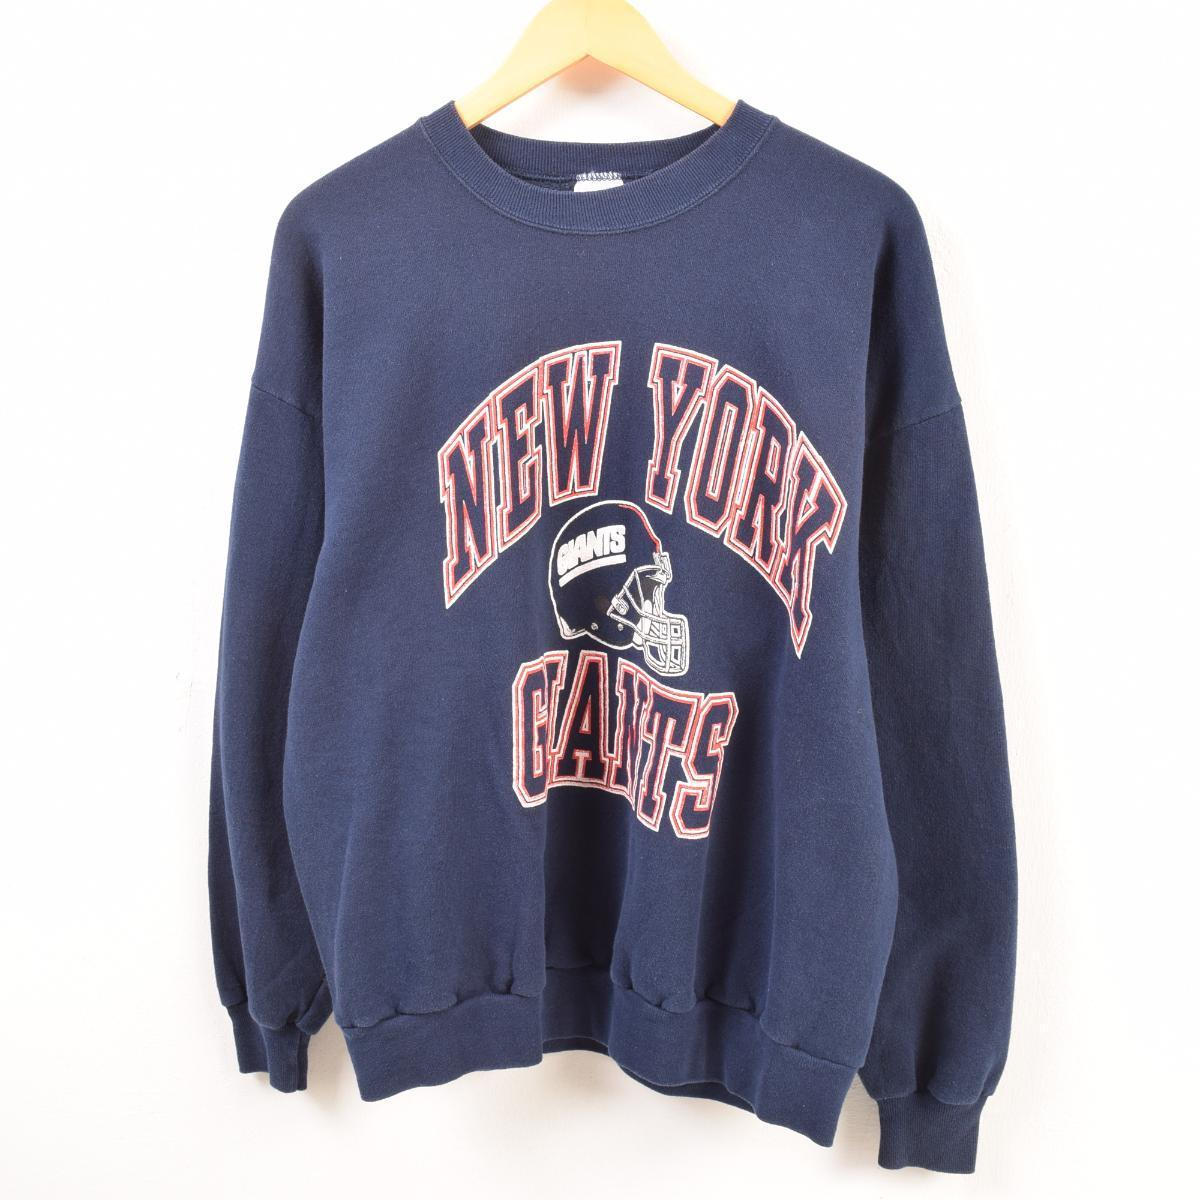 huge discount 99229 0f496 Men XL vintage /waw9411 in the 80s made in jerseys Jerzees NFL NEWYORK  GIANTS New York Giants sweat shirt trainer USA